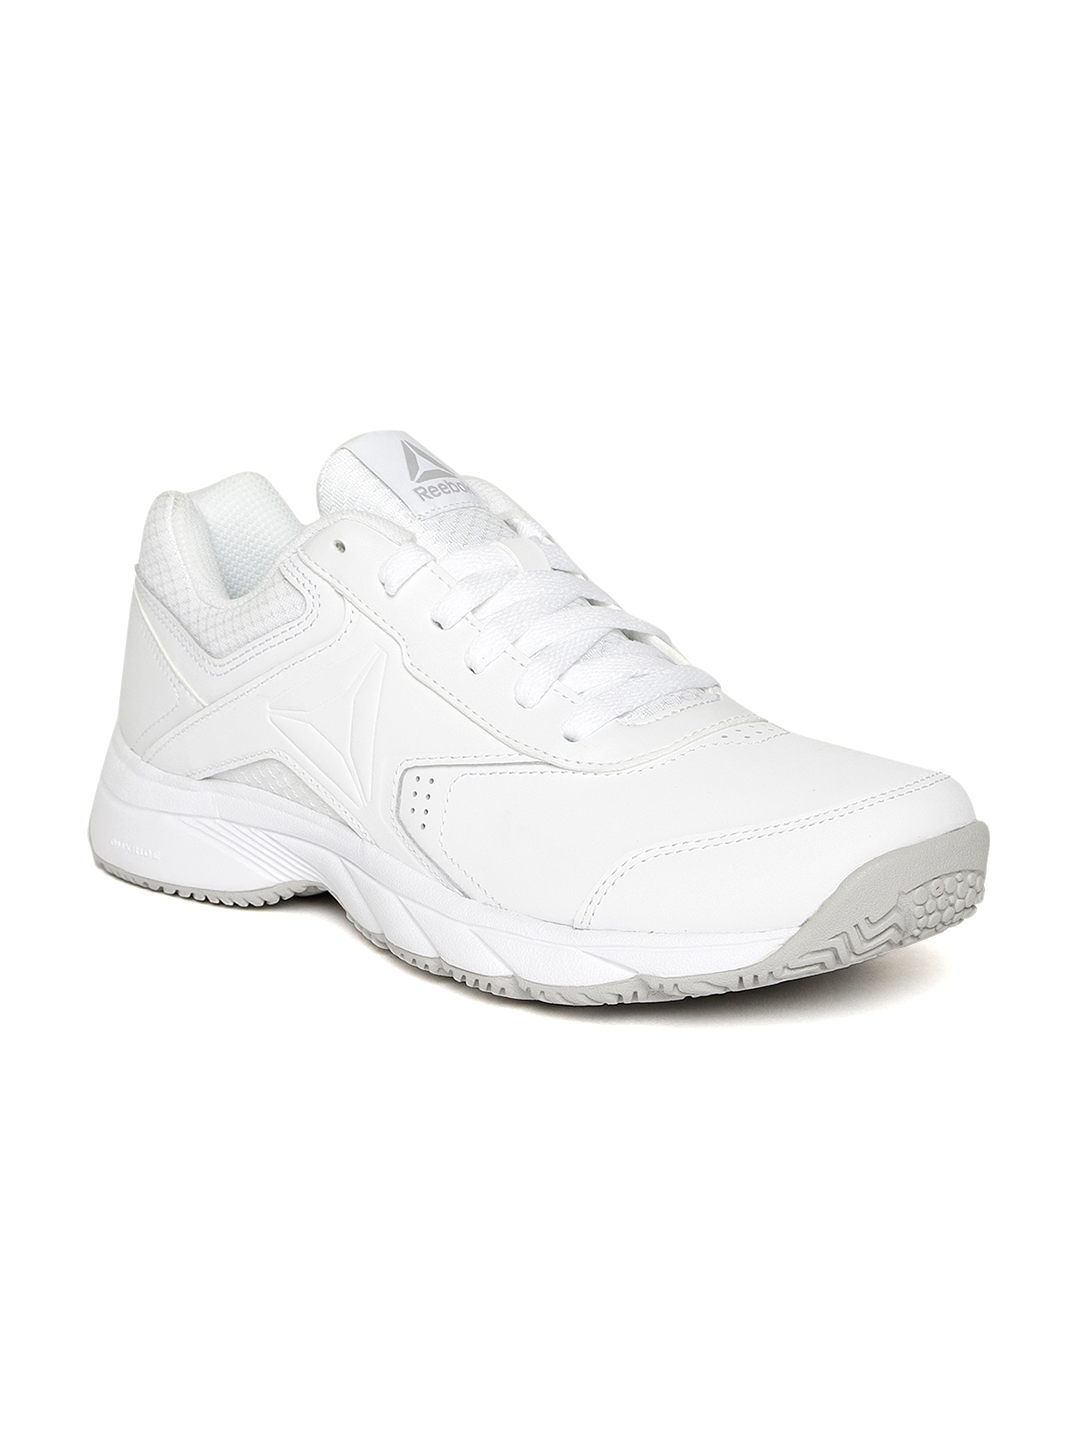 ... Buy Reebok Men White Work N Cushion 3.0 Walking Shoes - Sports Shoes . 1d7c2b873